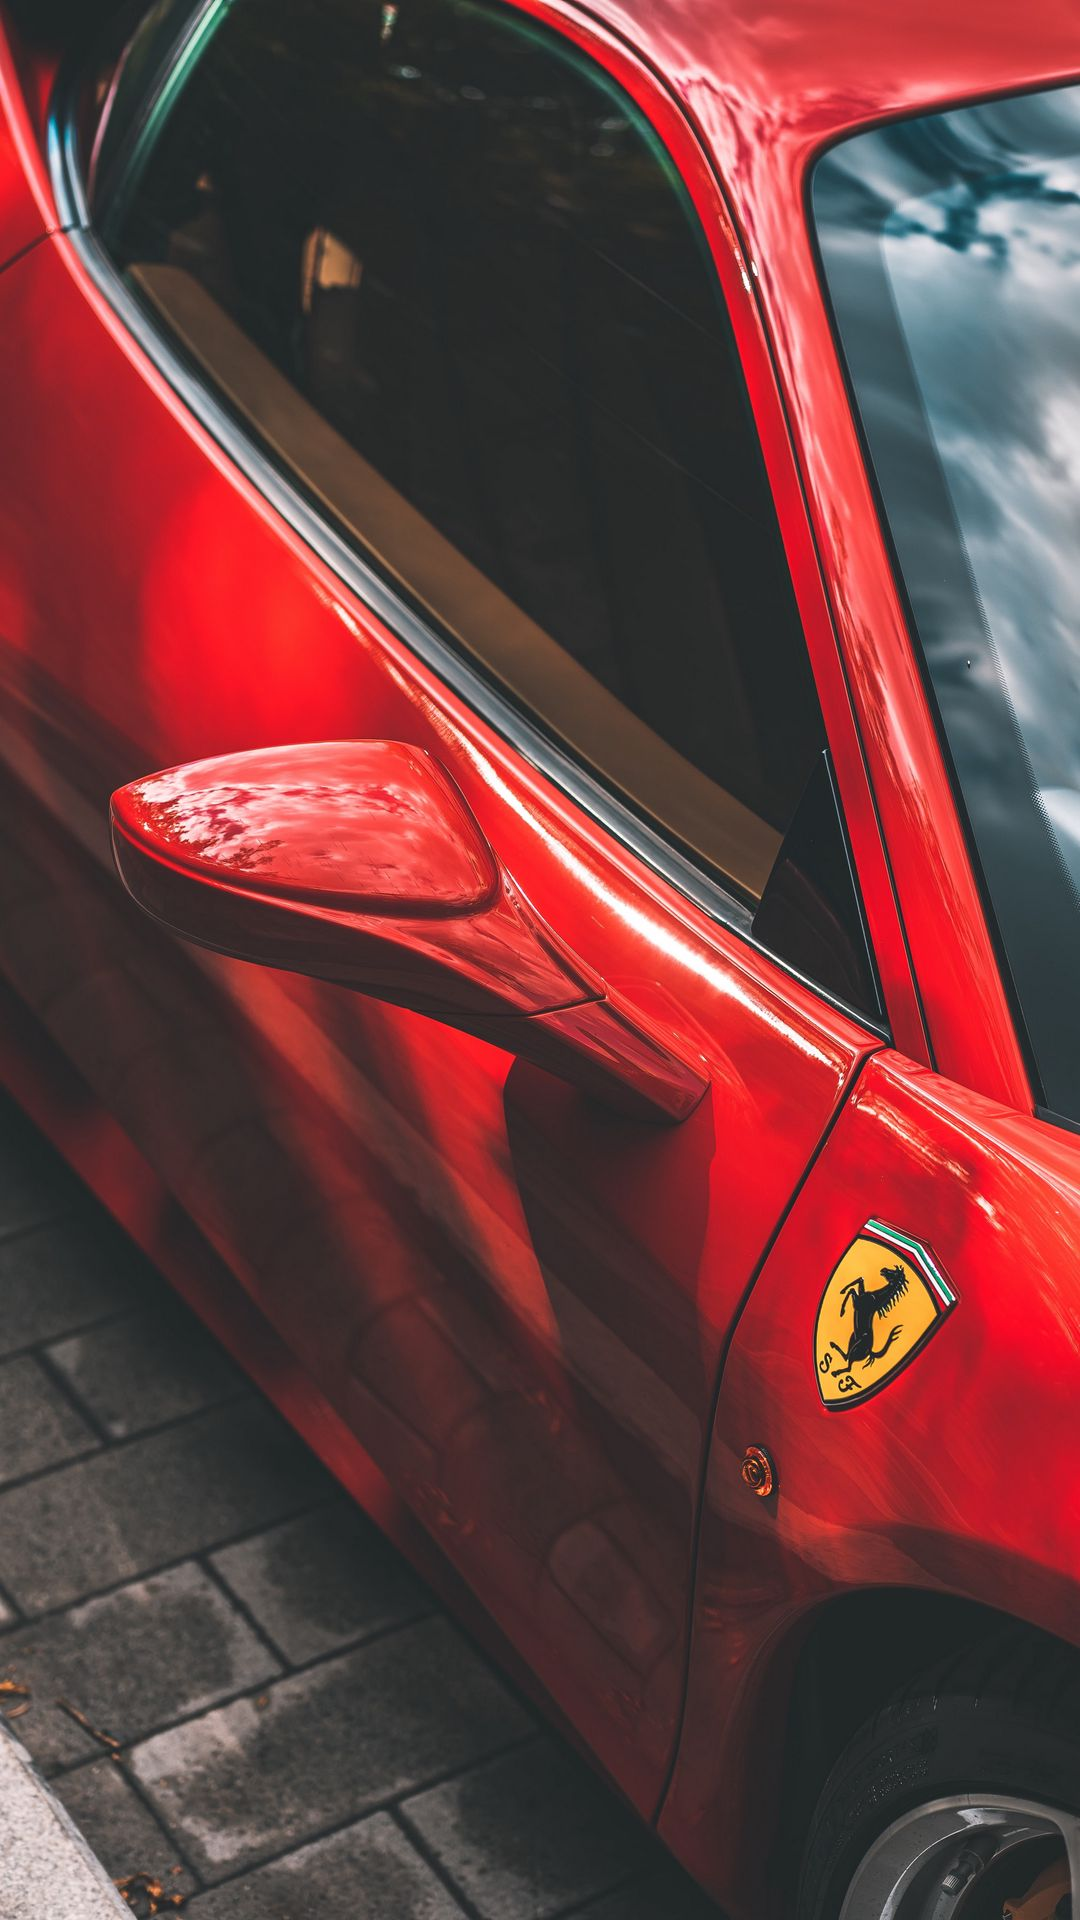 Ferrari Wallpapers Free Download for Mobile